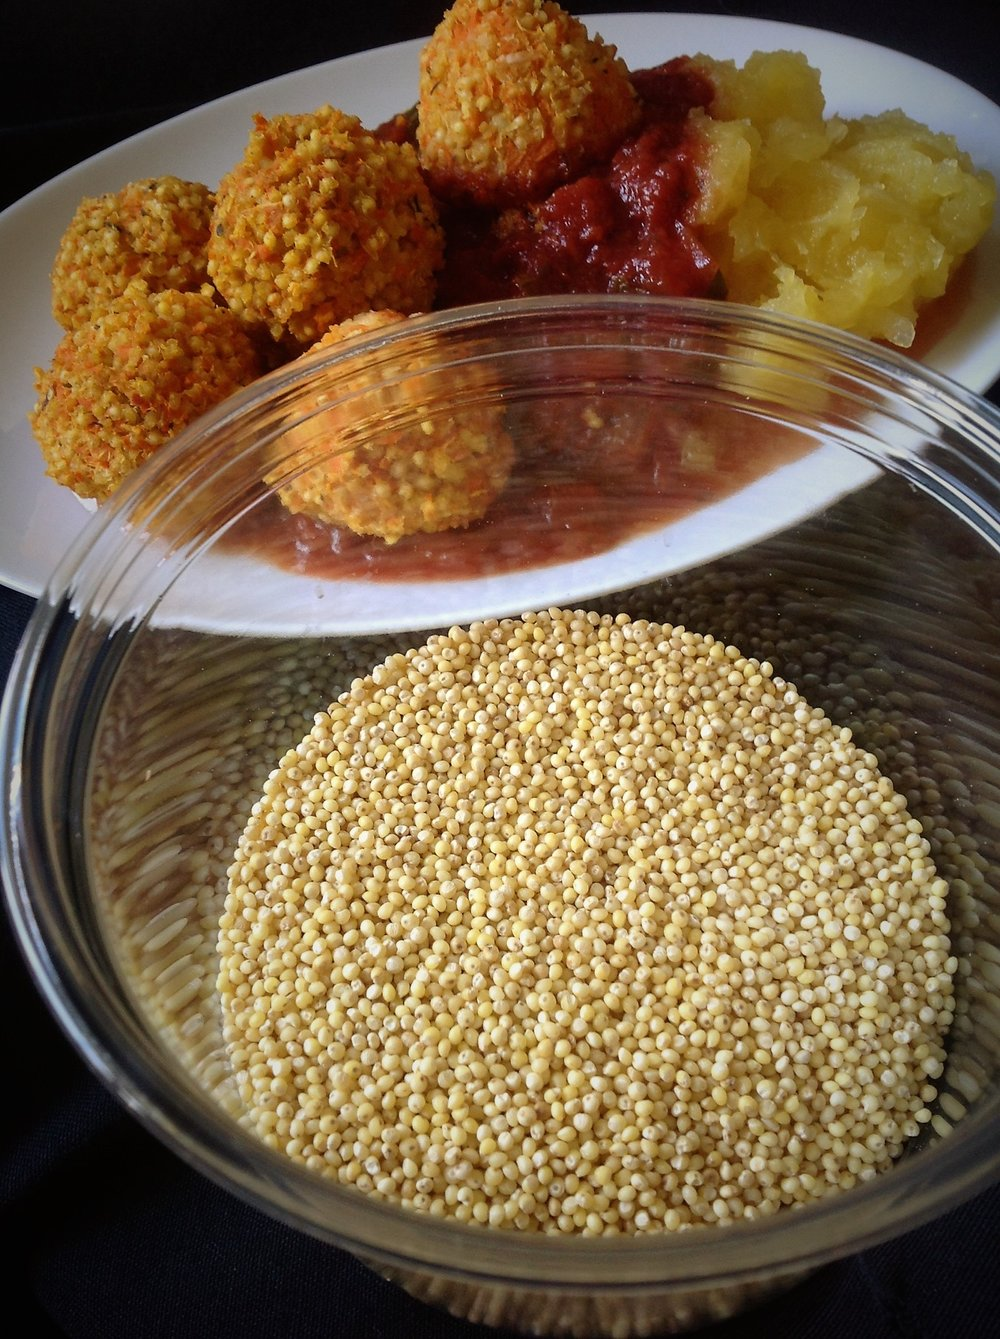 Chef's Plant-Based Tip:  Millet is a gluten-free whole grain.  It's often found in eastern African cooking, where it's ground to flour for Ethiopian Njera bread.  It provides healthy fiber and vegan protein while also soaking up flavor.  Perfect for this healthy, plant-based Italian meatball recipe